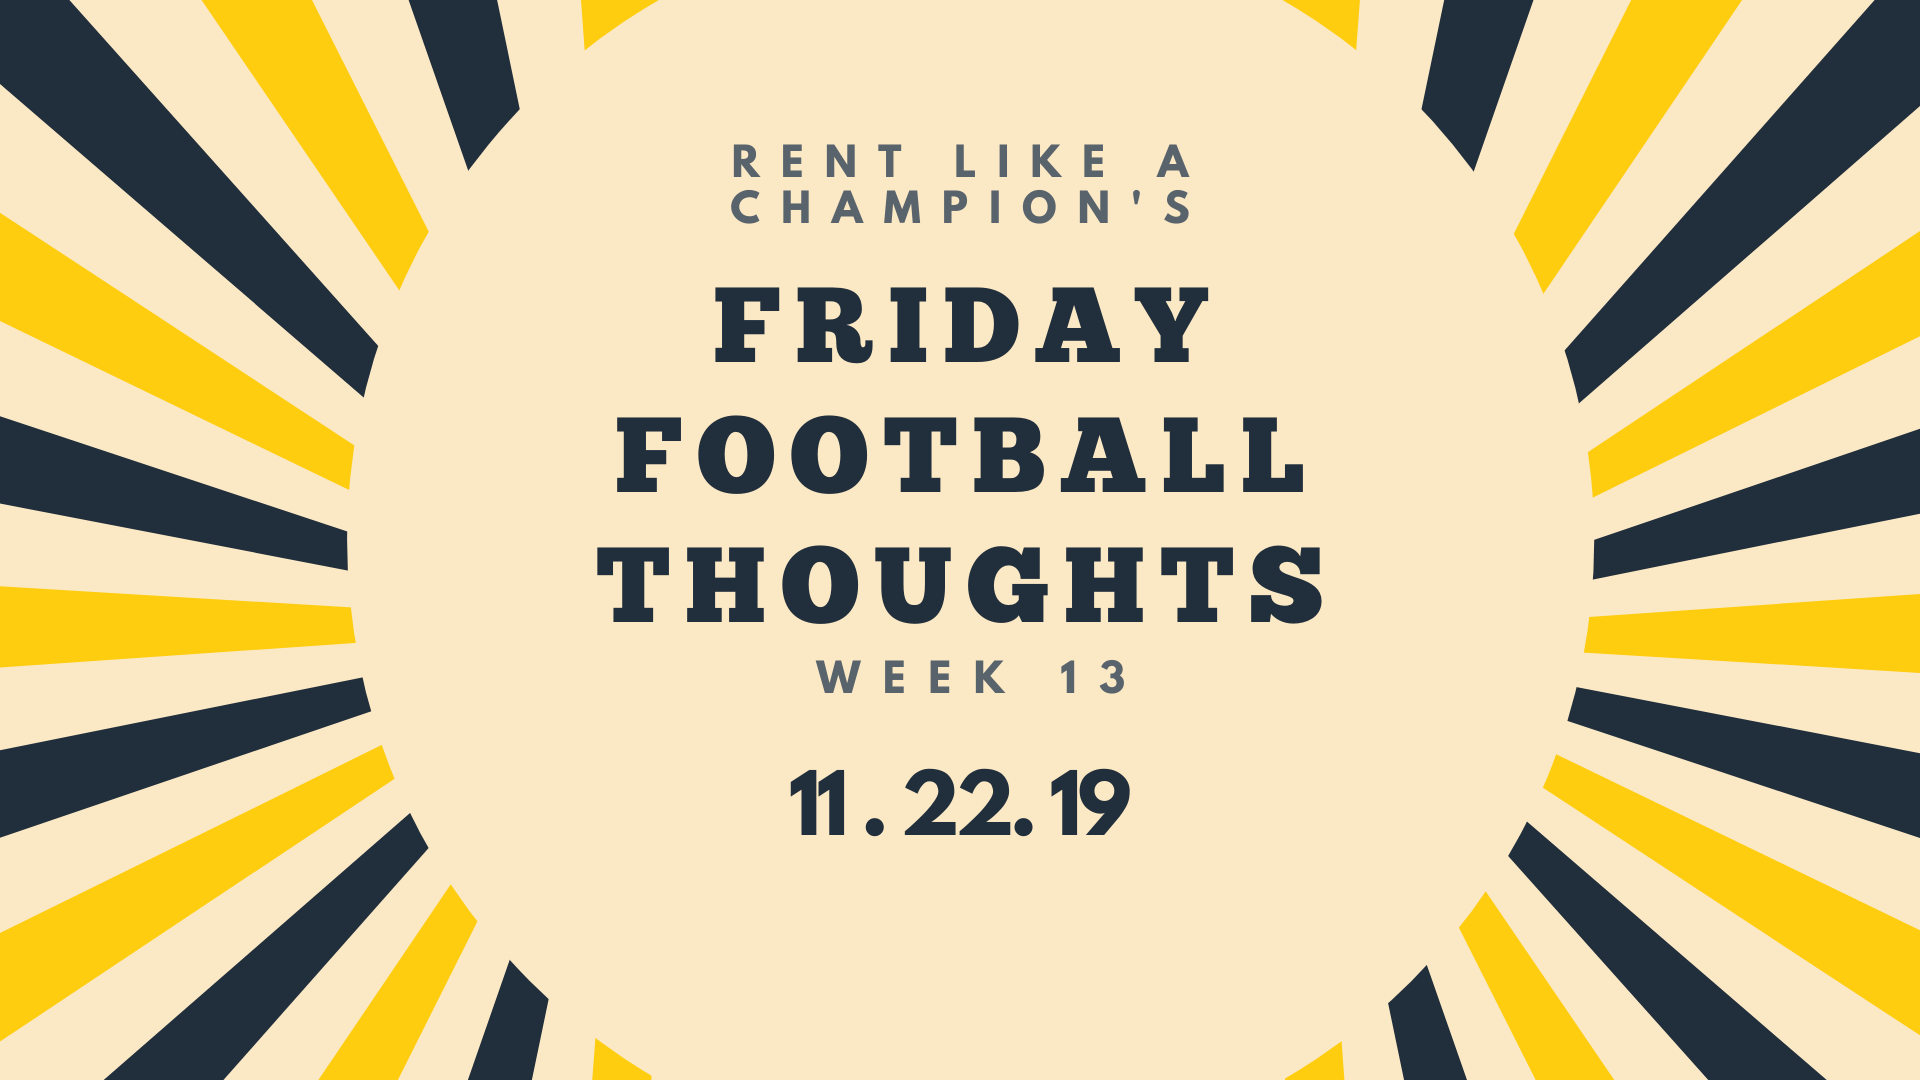 Friday Football Thoughts Template (5)